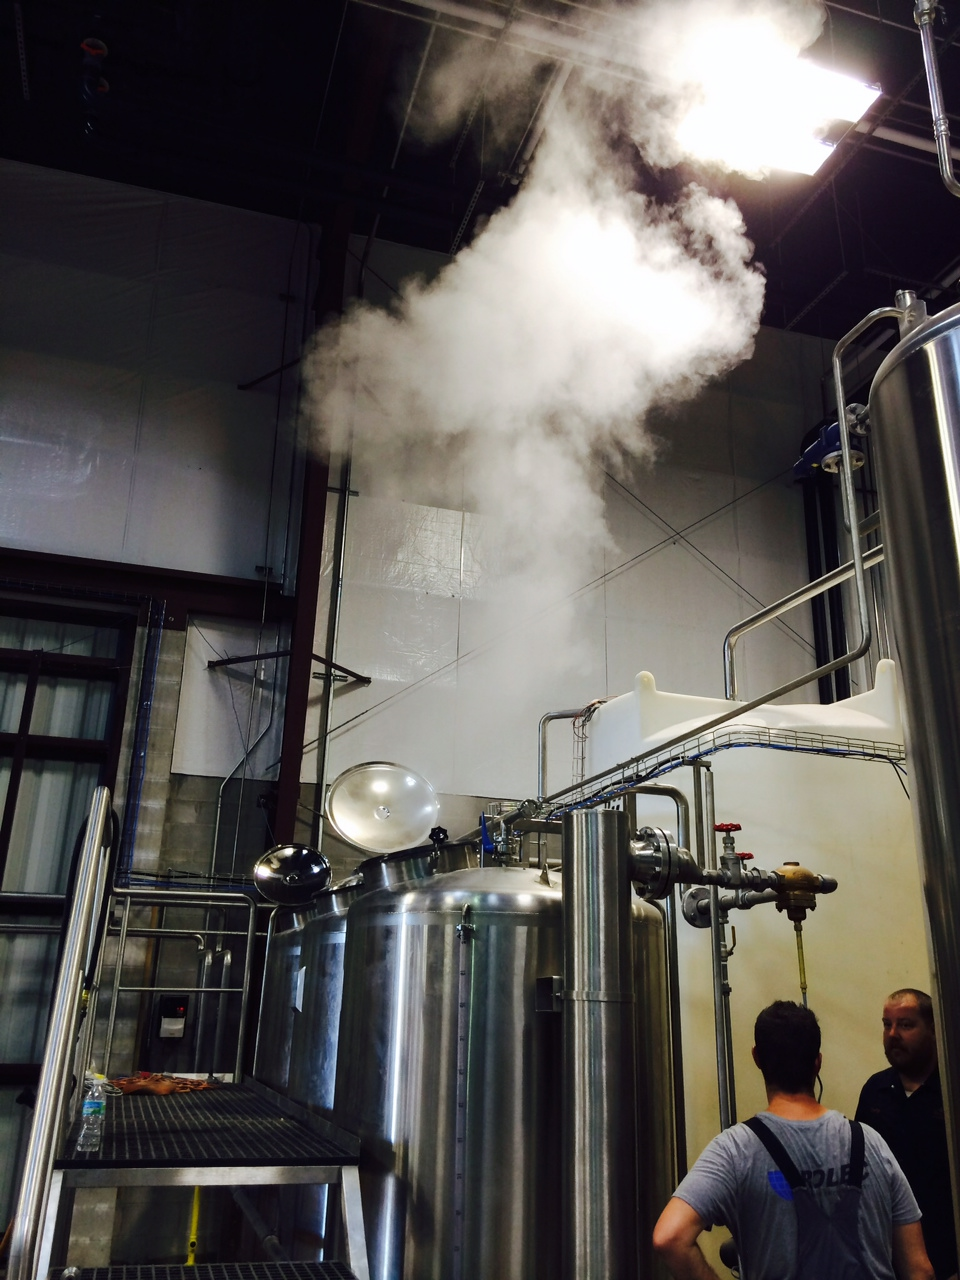 Where there is steam, there shall soon be beer.